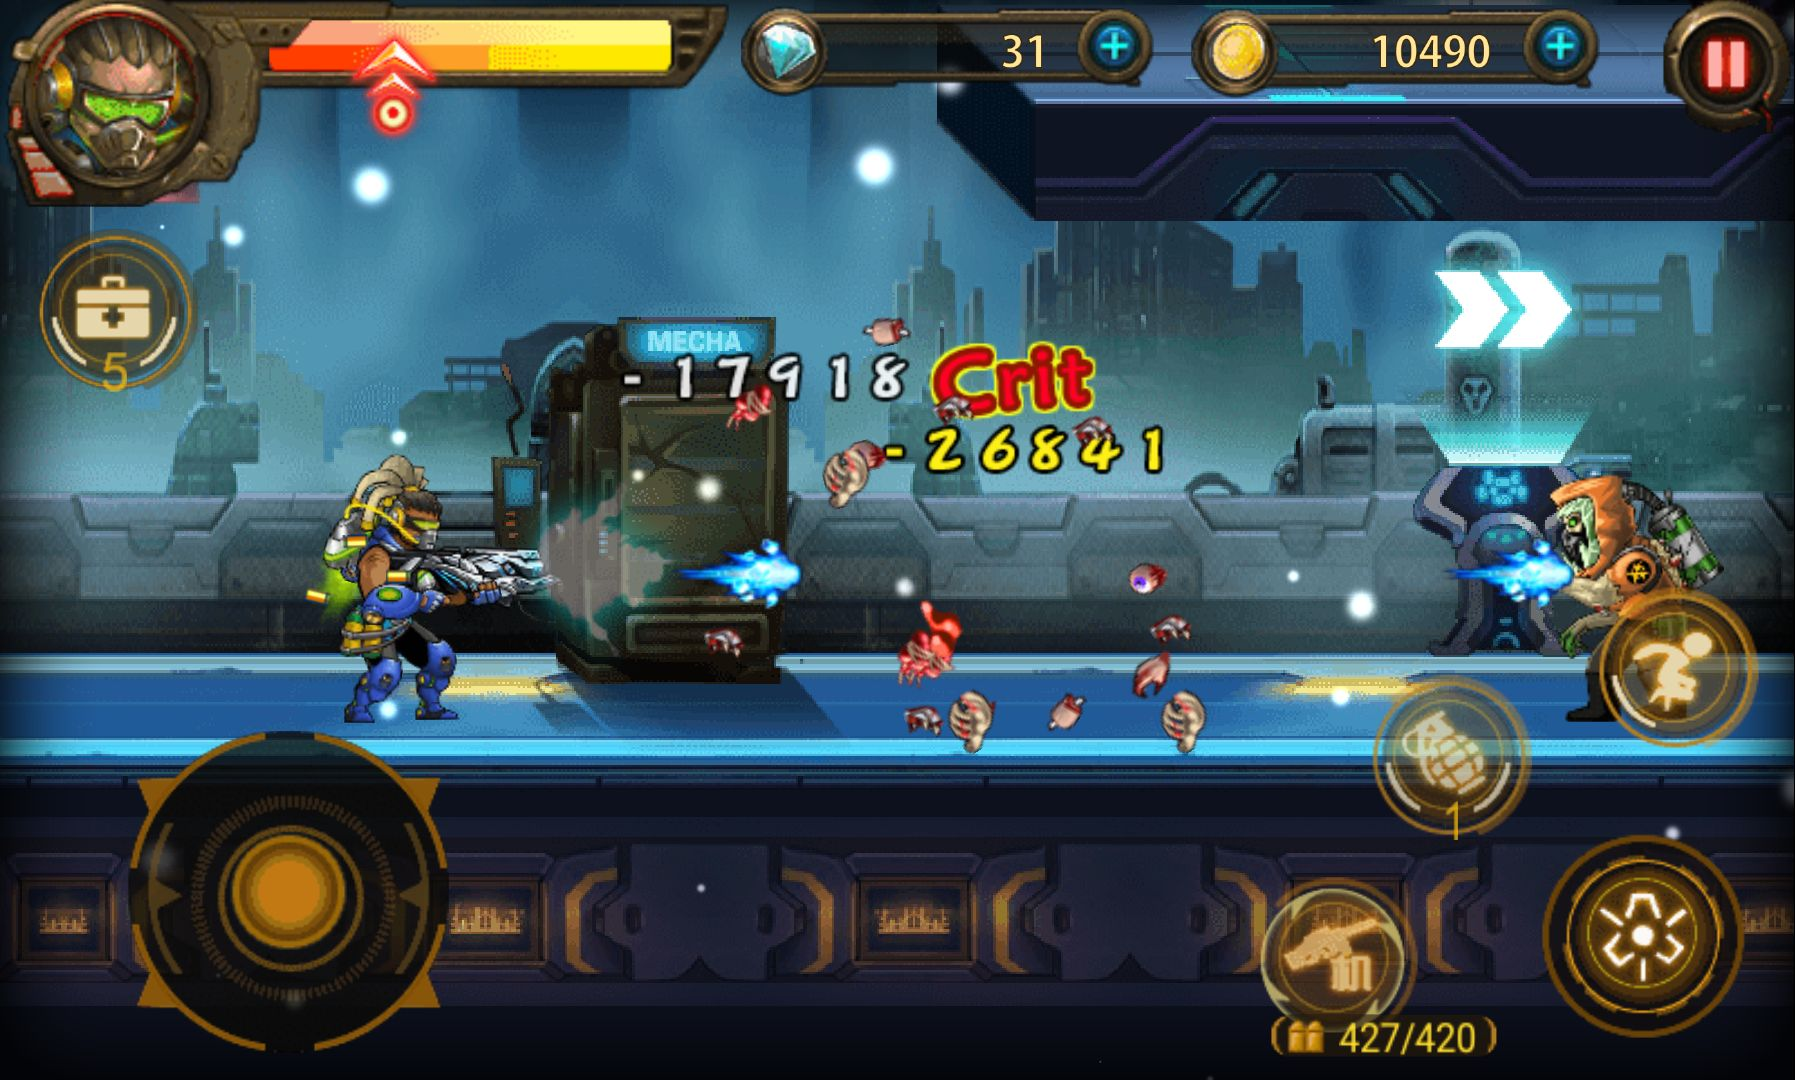 androidアプリ Heroic Action ゾンビ殲滅戦攻略スクリーンショット2